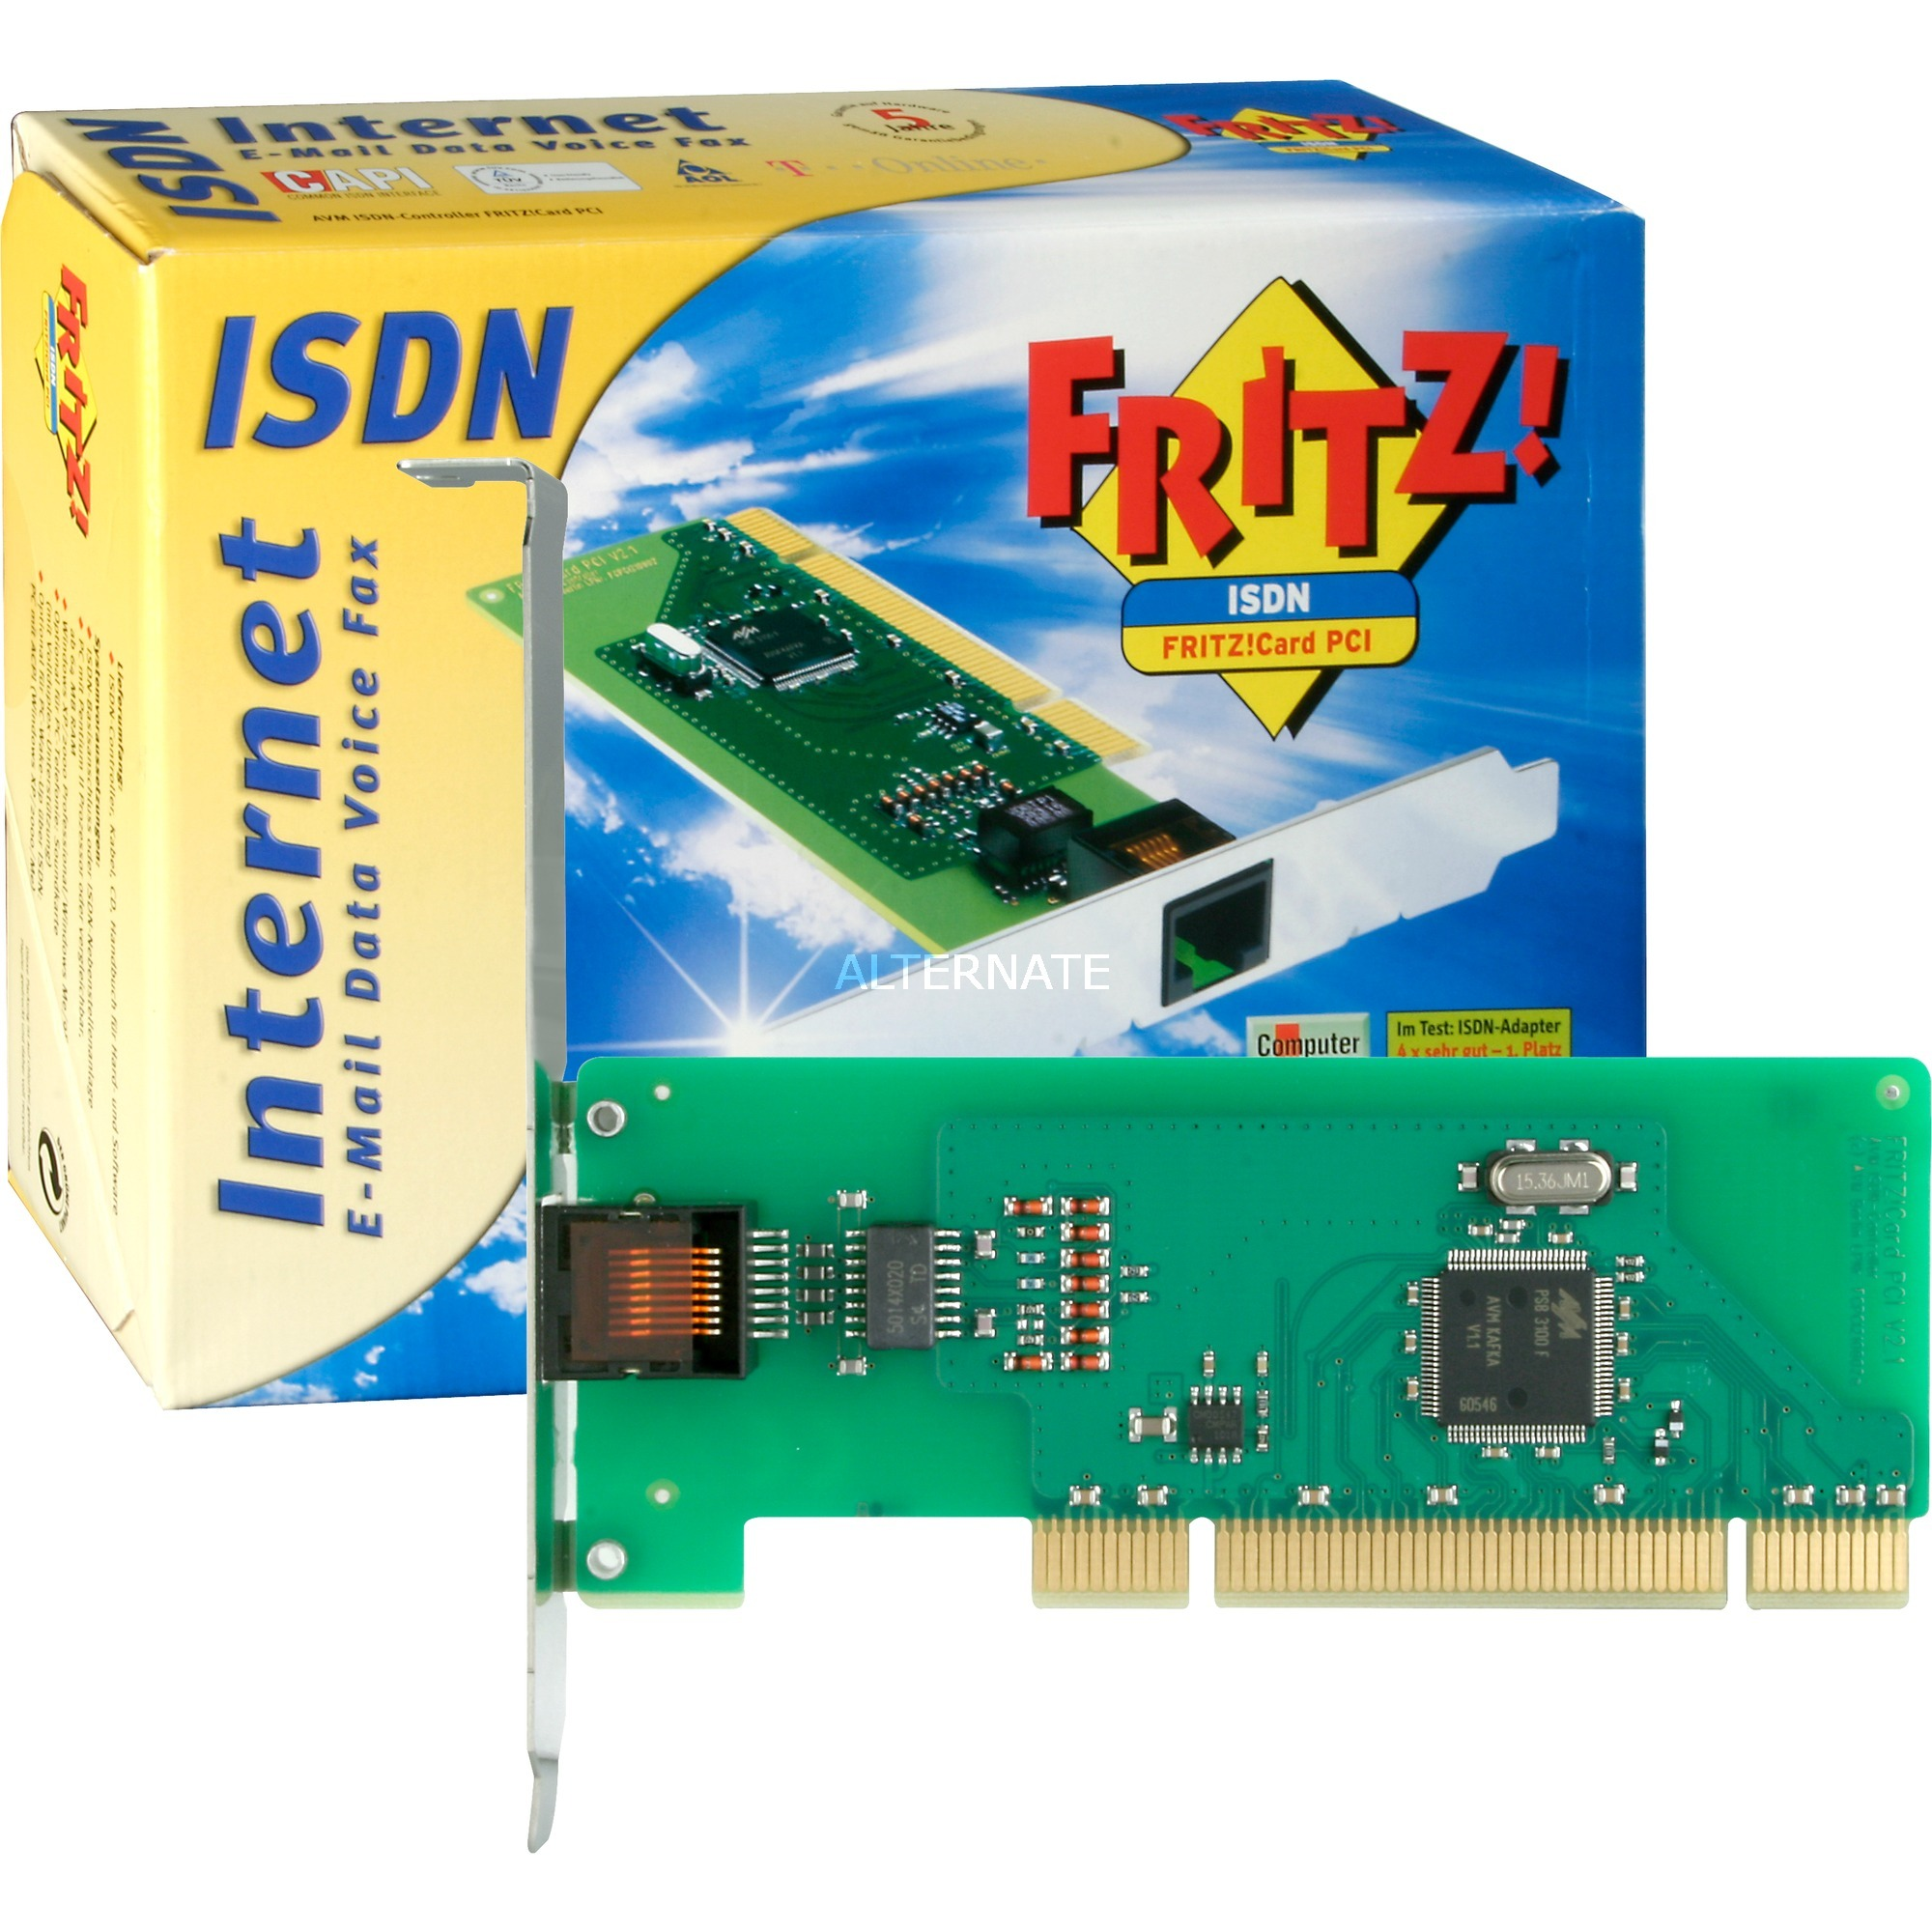 FRITZ!Card PCI dispositivo de acceso RDSI, Módem